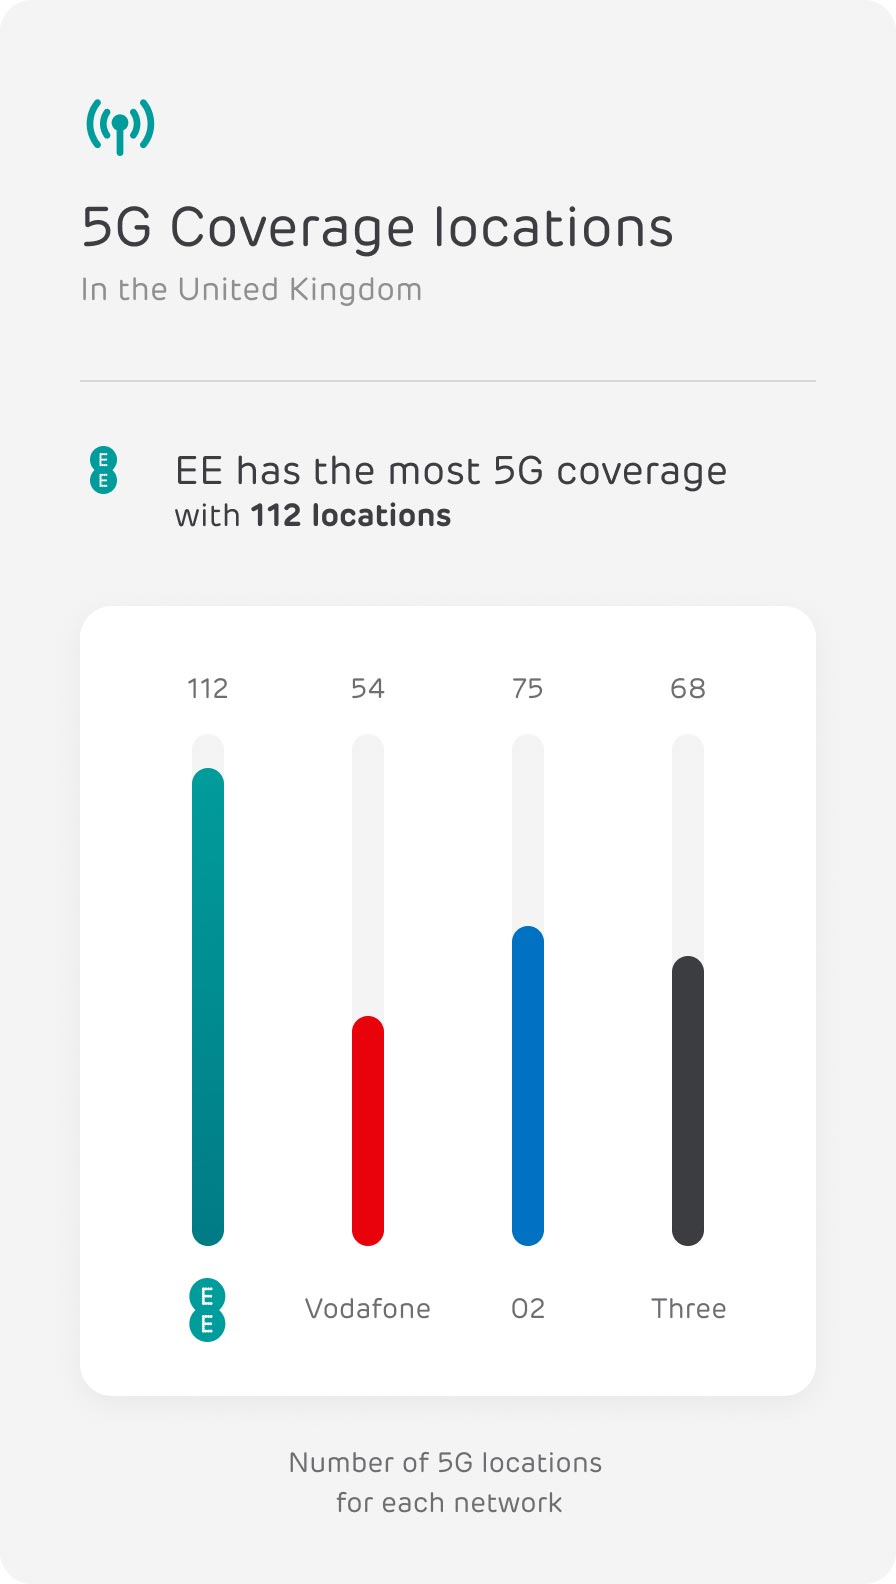 5G Coverage locations of major networks